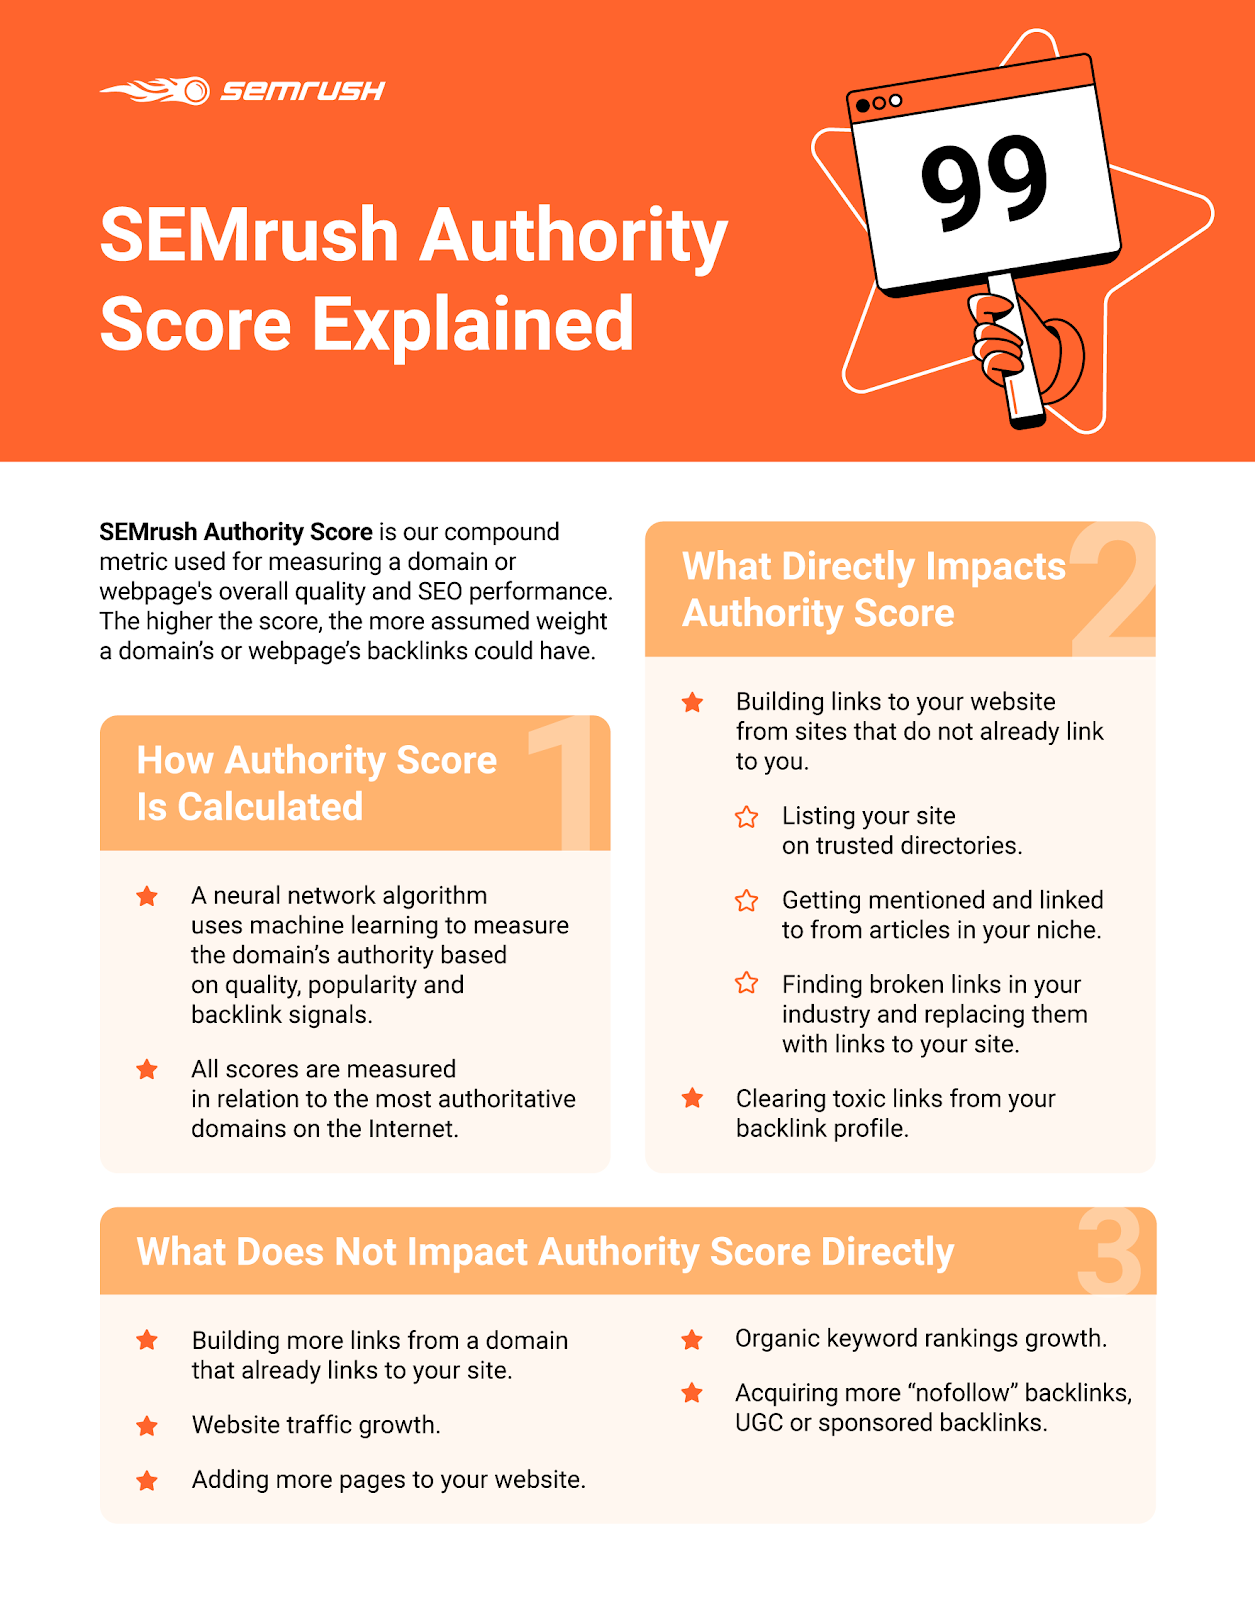 SEMrush Authority Score Explained. Image 9